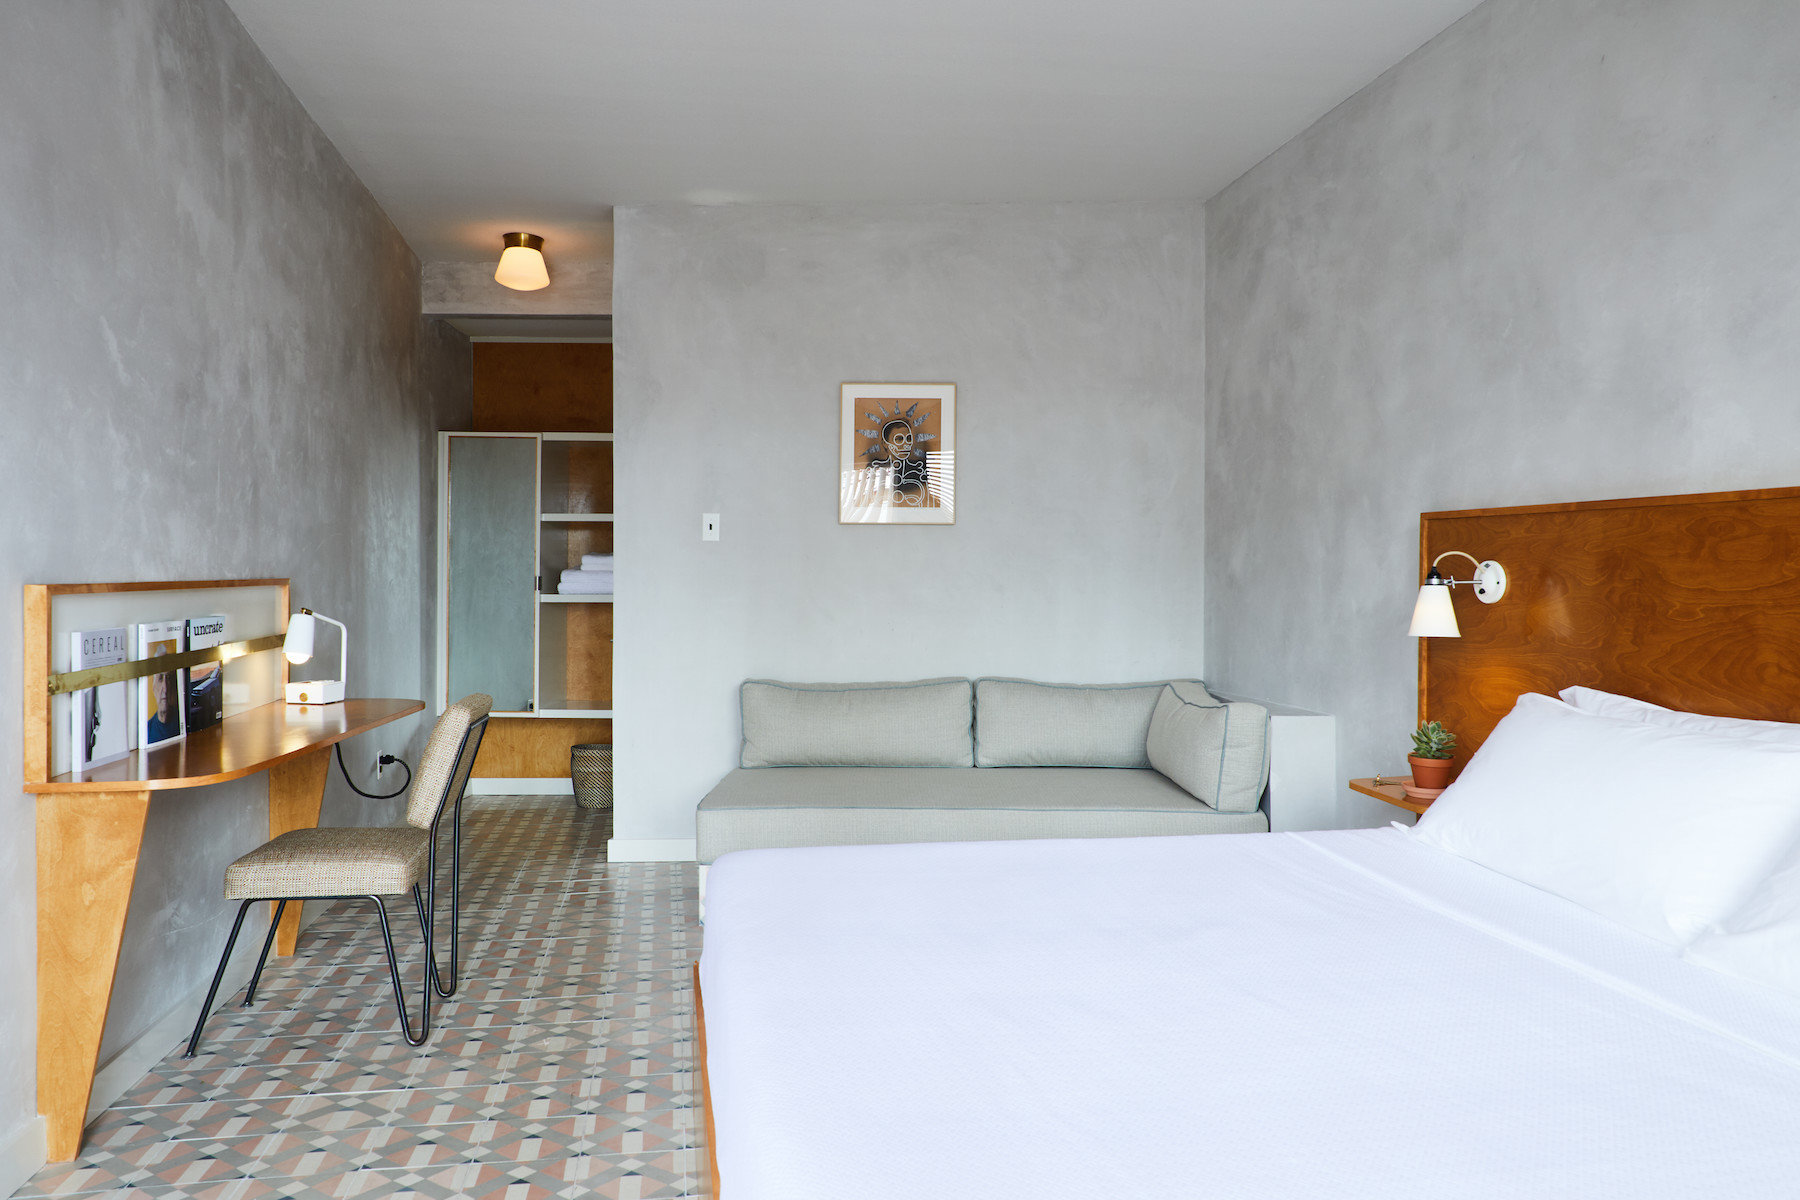 Boutique Hotels Hotels Luxury Travel Trip Ideas Weekend Getaways Winter indoor wall bed floor ceiling room property Architecture Suite Bedroom interior design real estate hotel house furniture interior designer comfort living room area wood